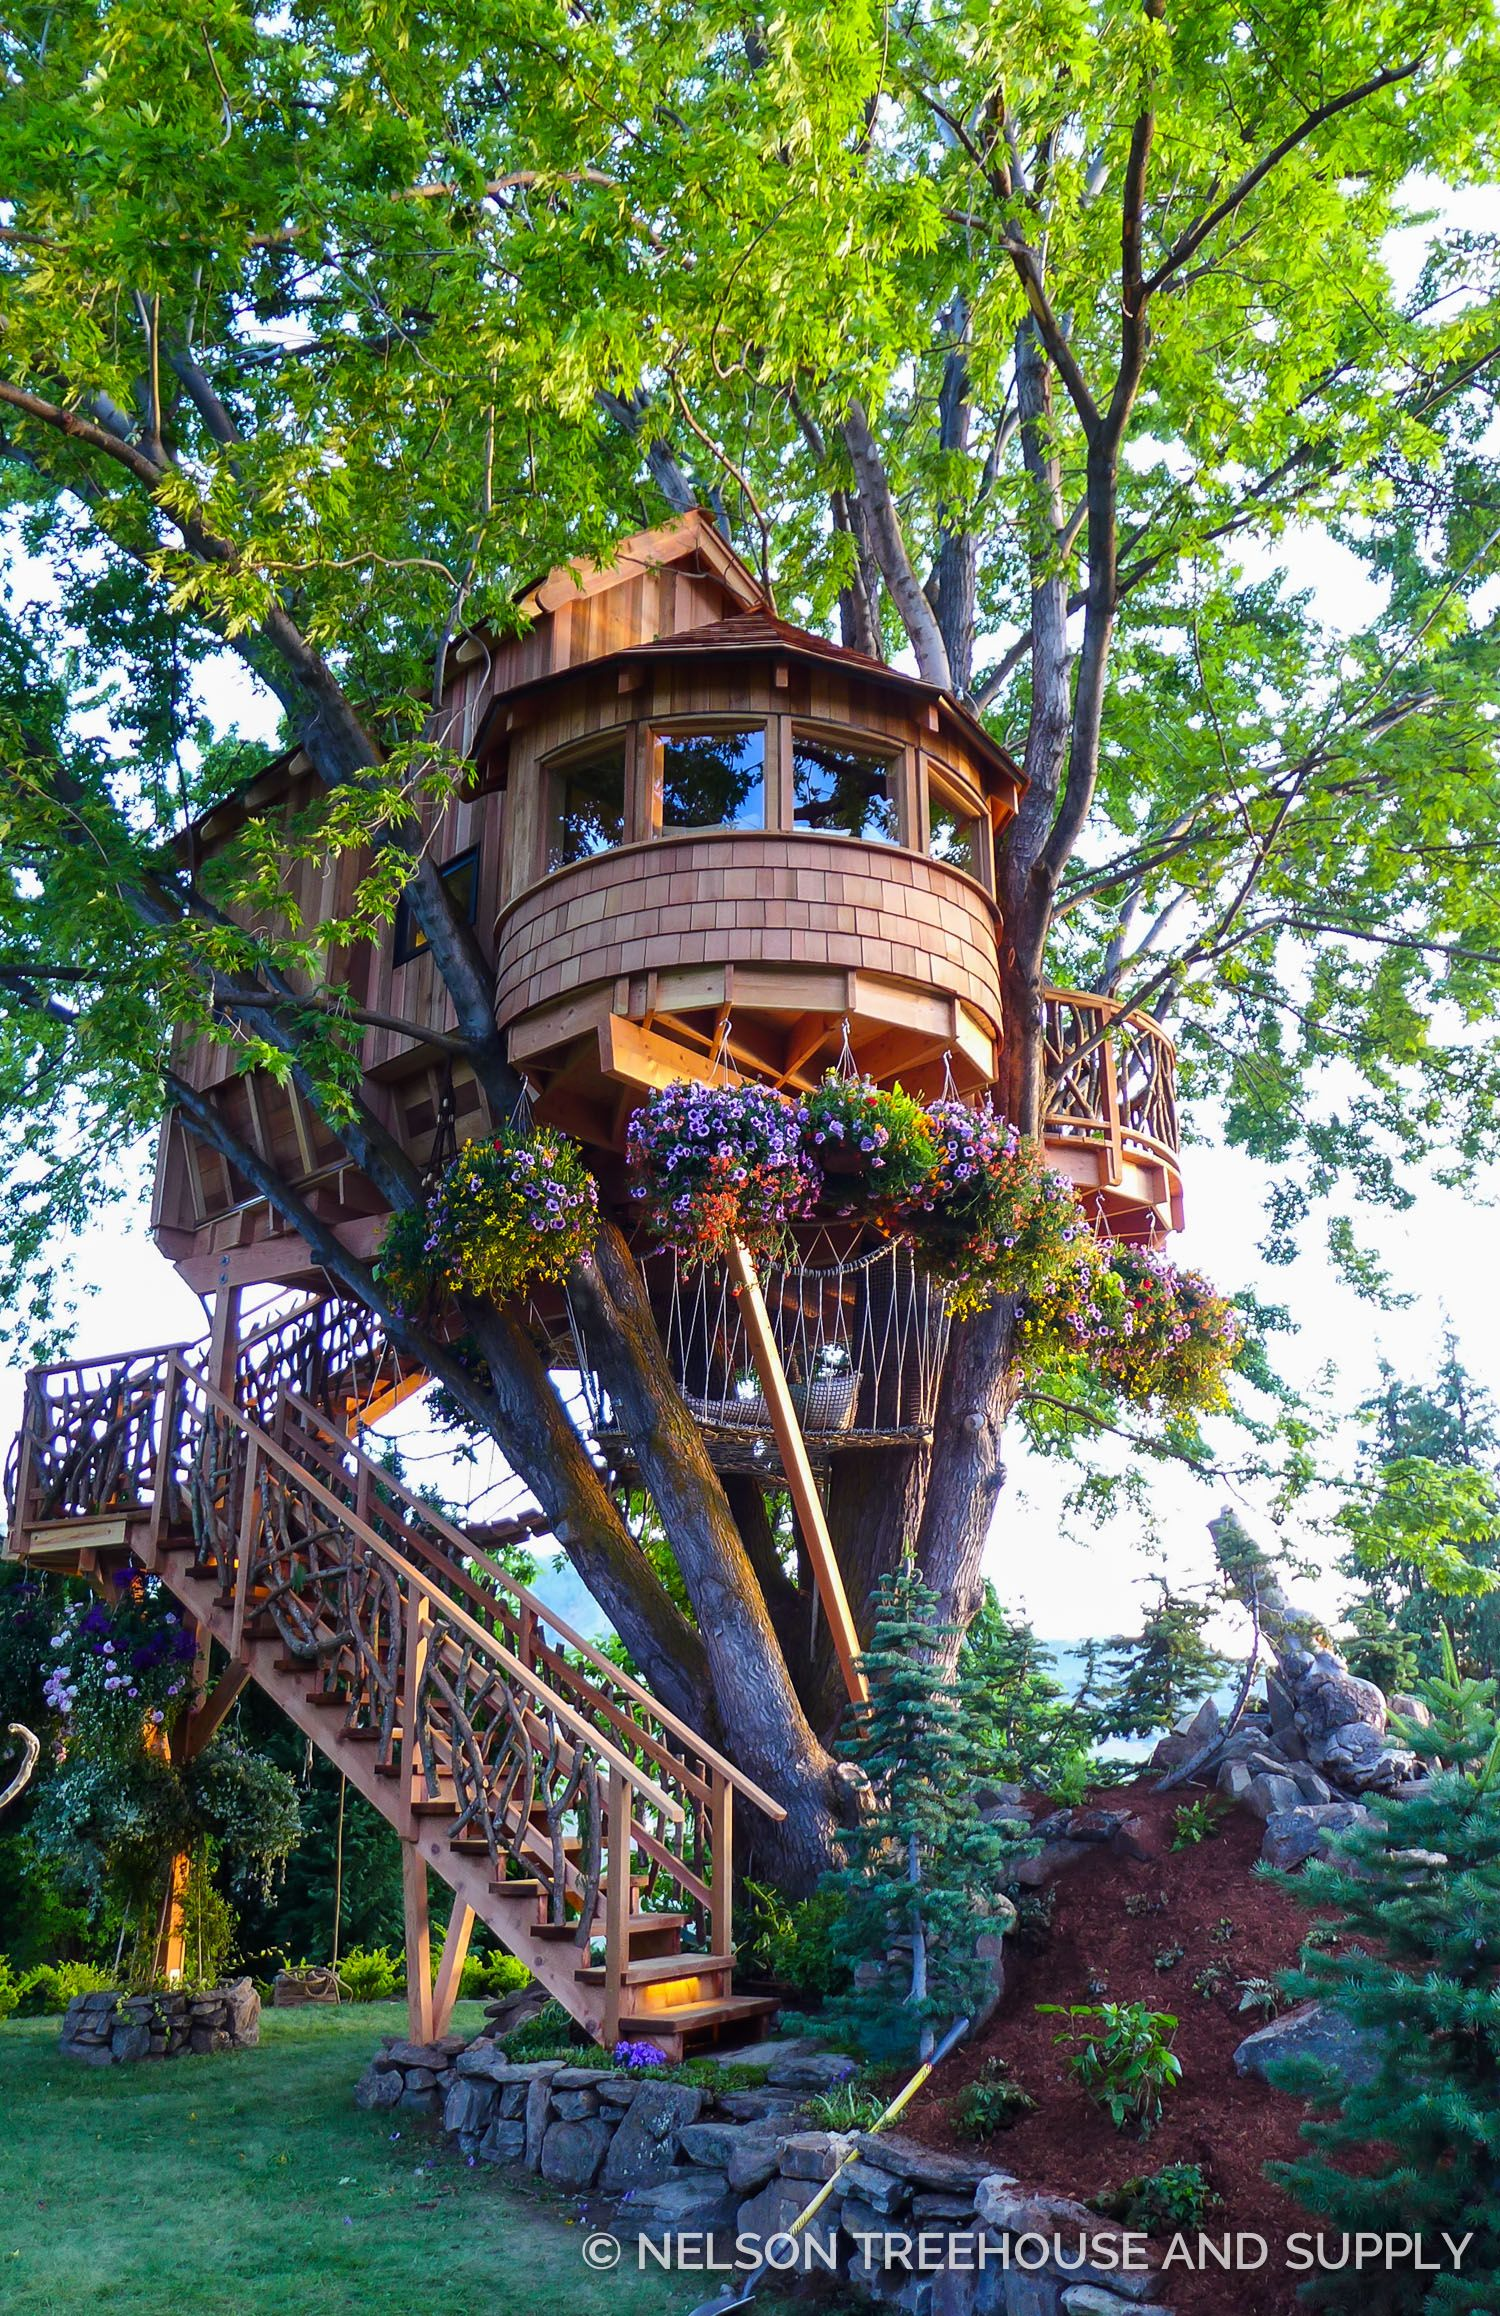 Nelson Treehouse Mindbending Maple | Artstrada Magazine | Pinterest ...